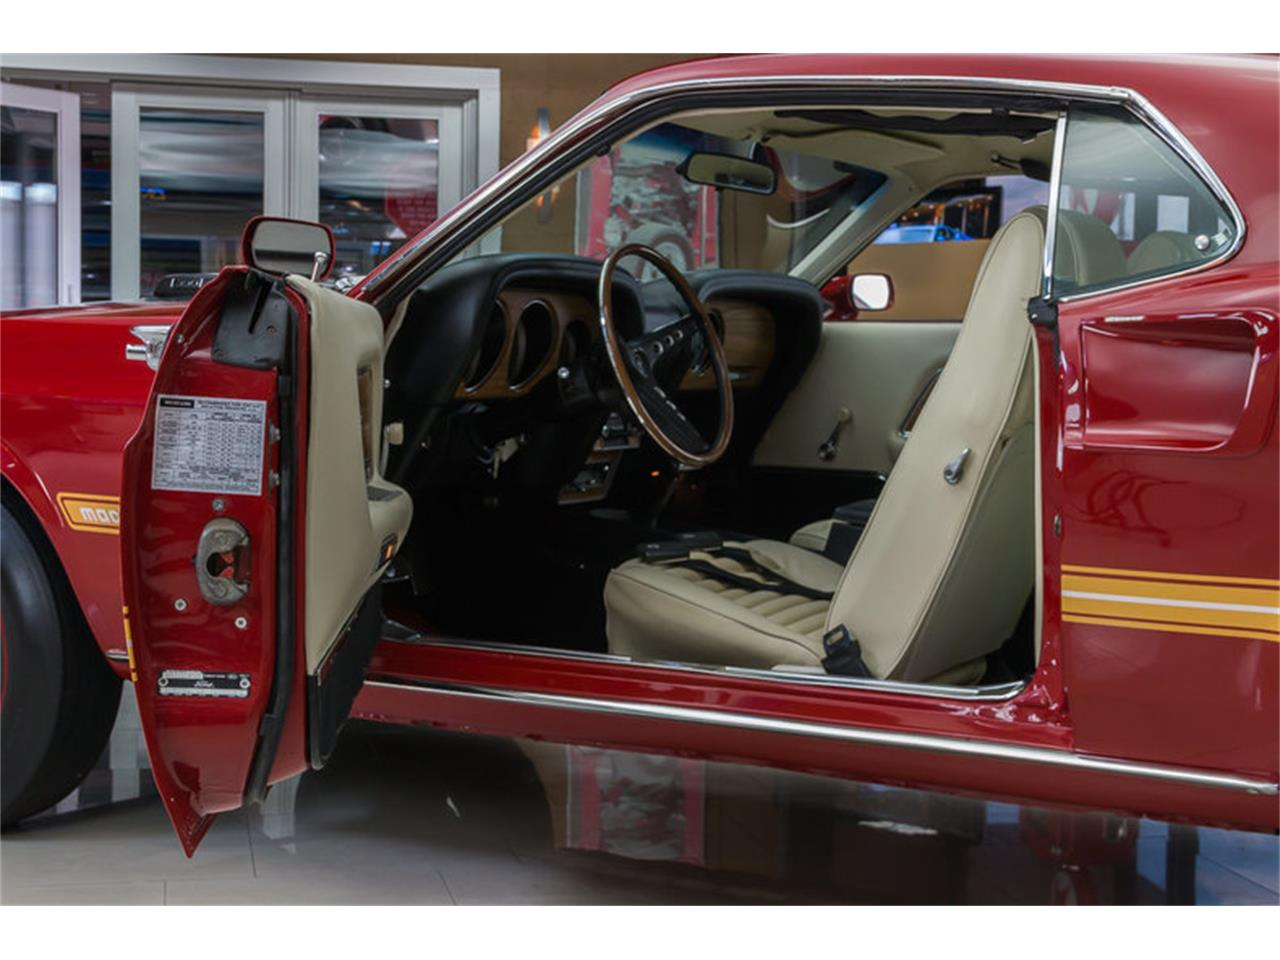 Large Picture of Classic '69 Mustang Mach 1 S Code located in Michigan - $59,900.00 - IS3G